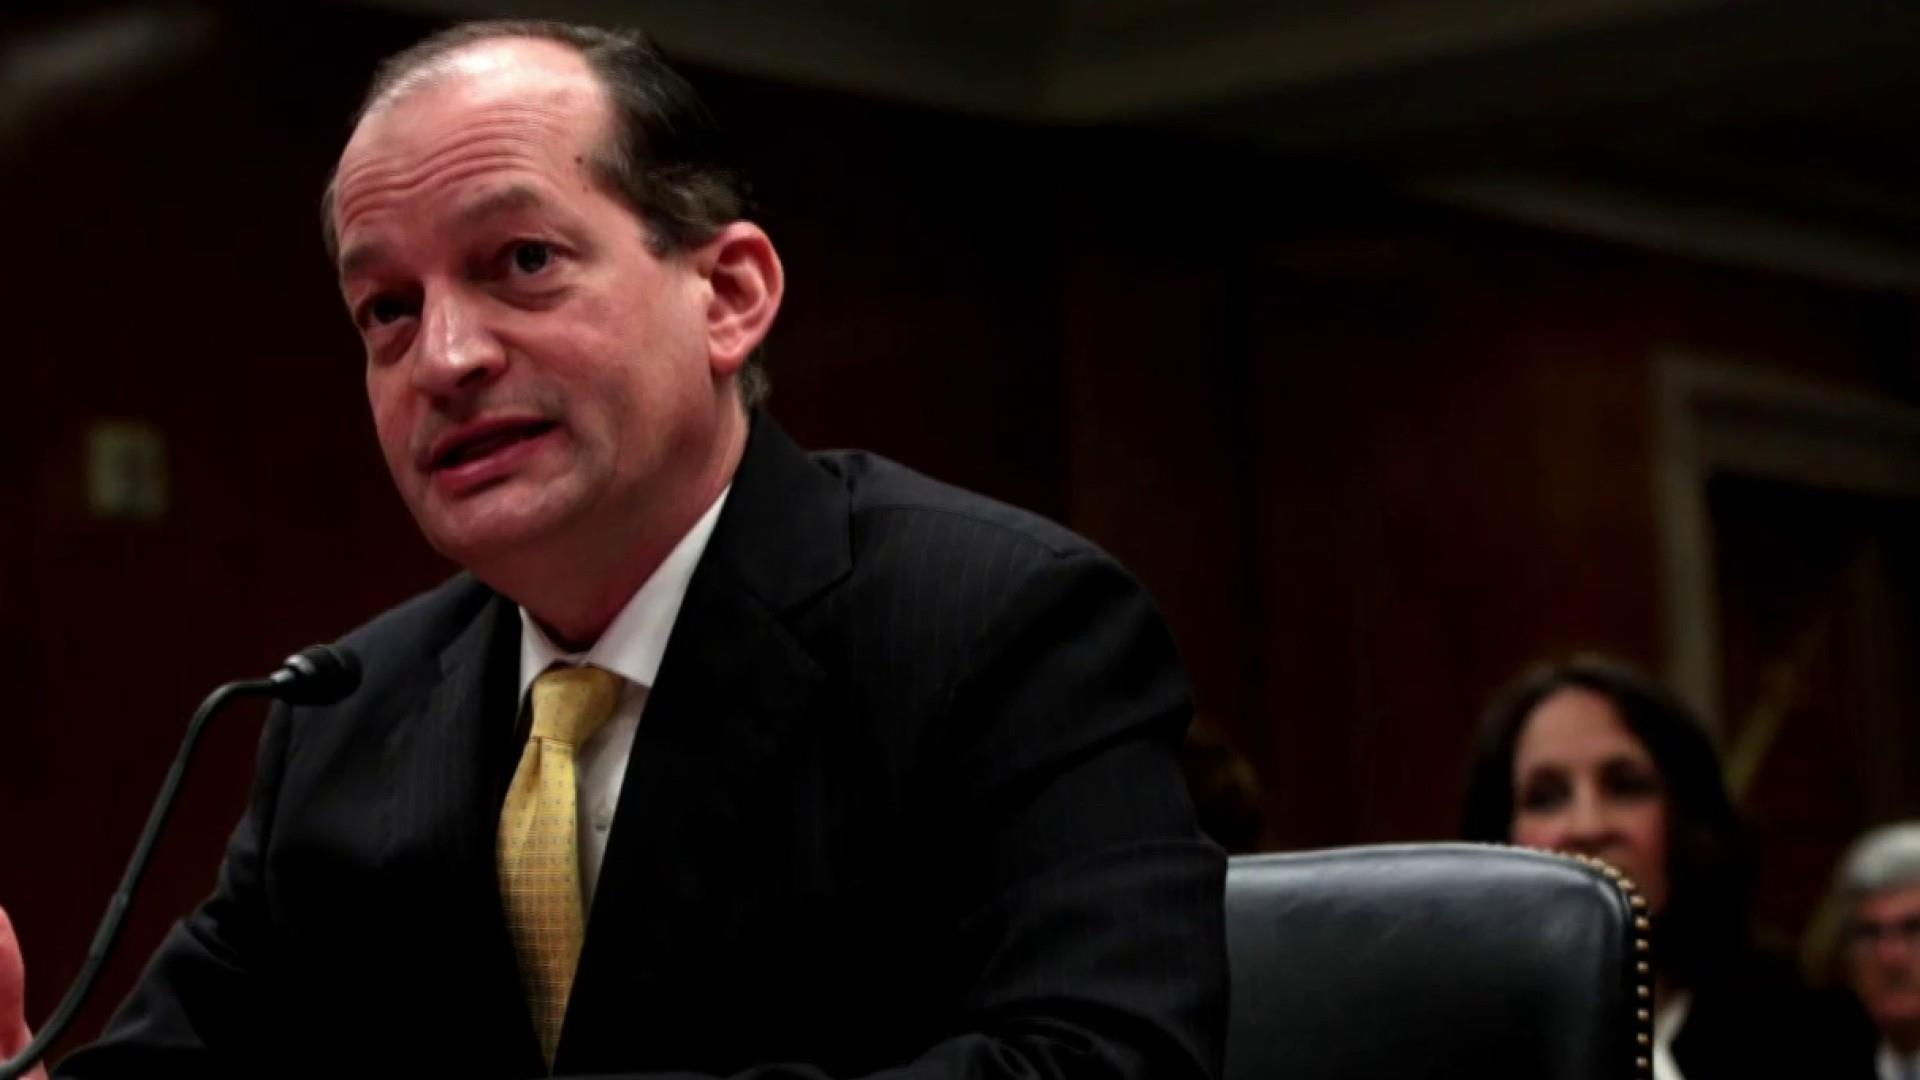 Alex Acosta speaking out amid Epstein controversy